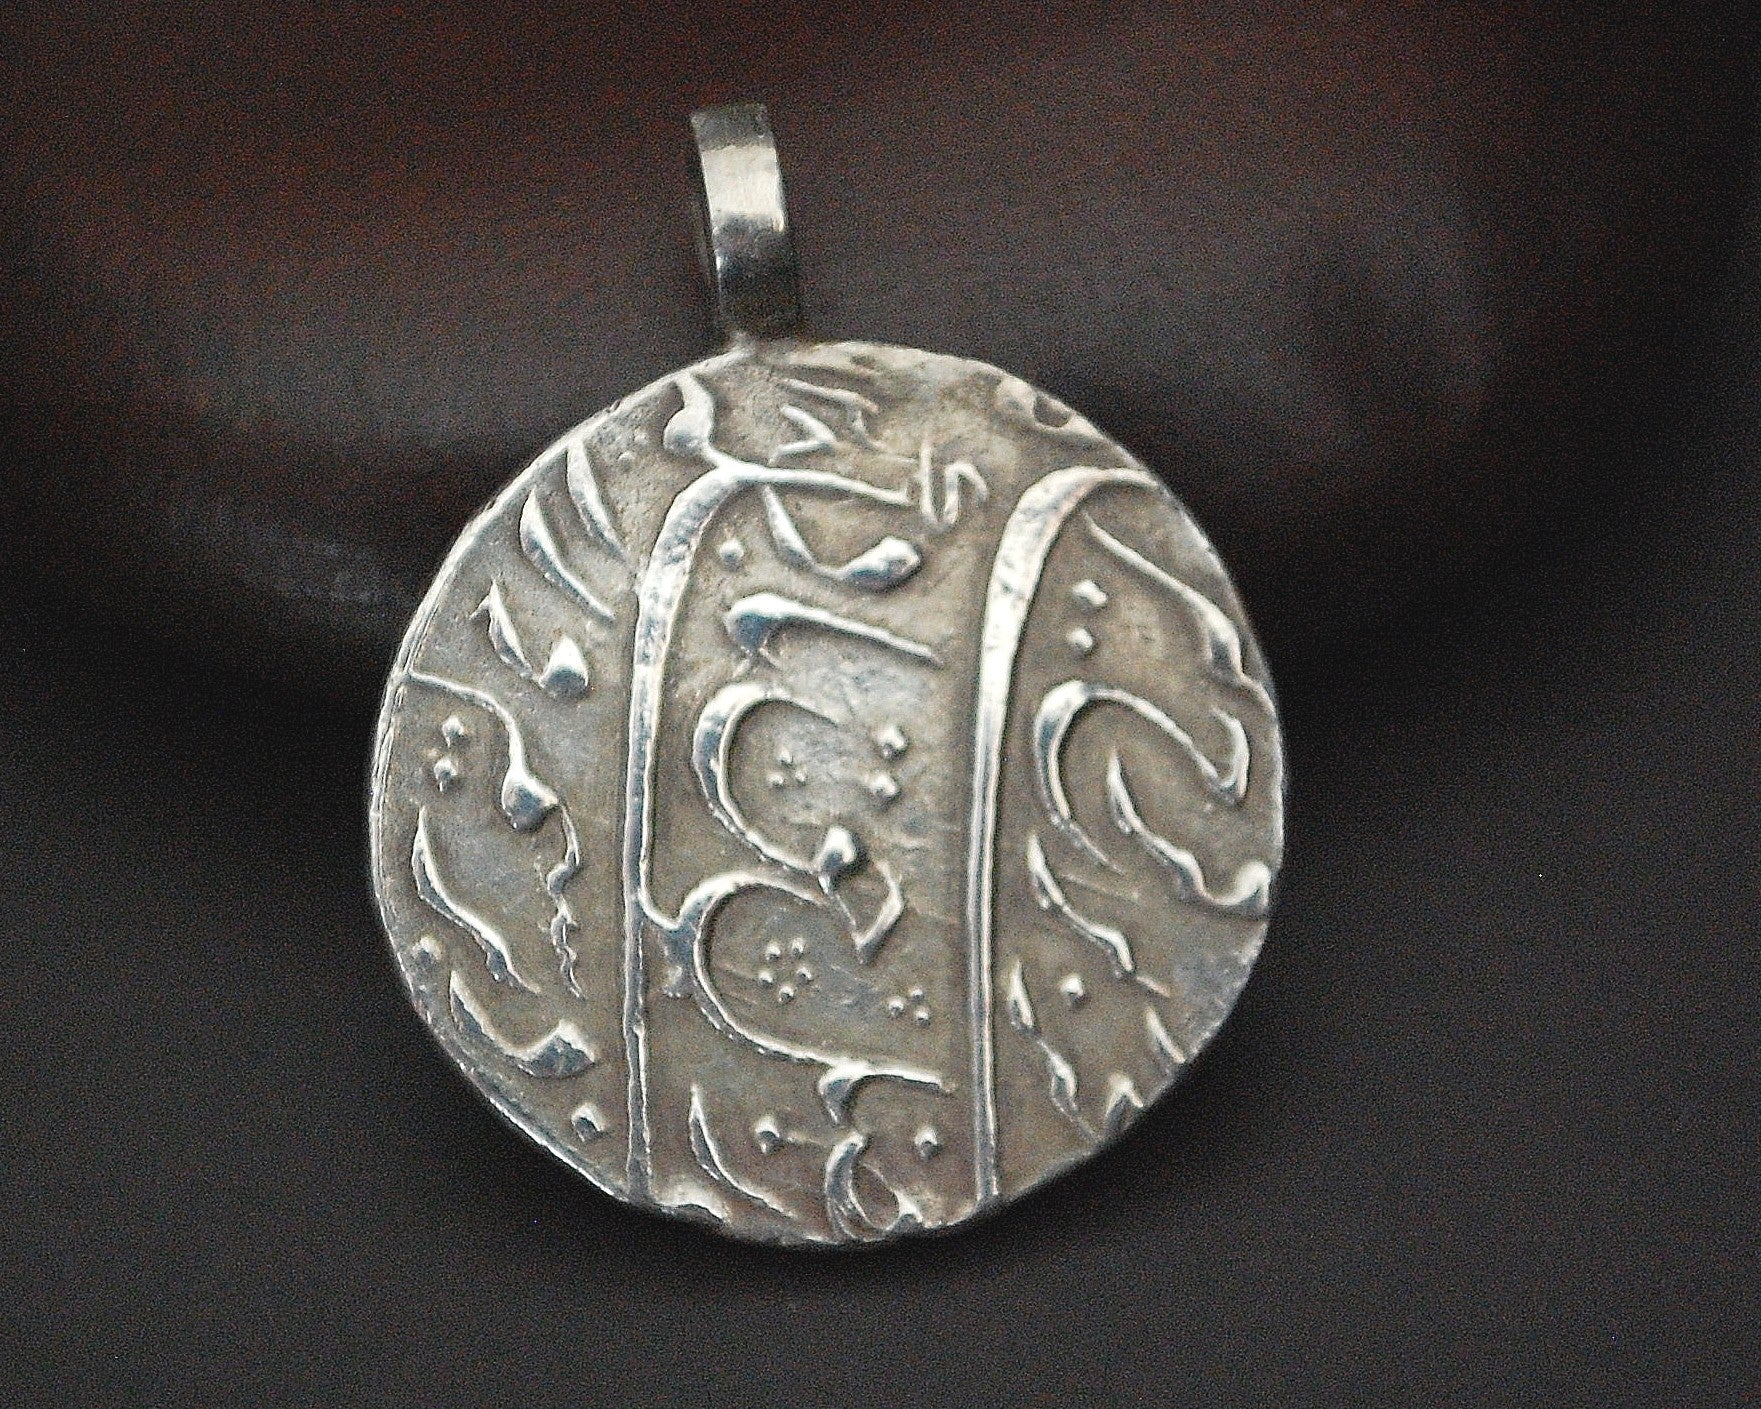 Antique Indian Mughal Coin Pendant